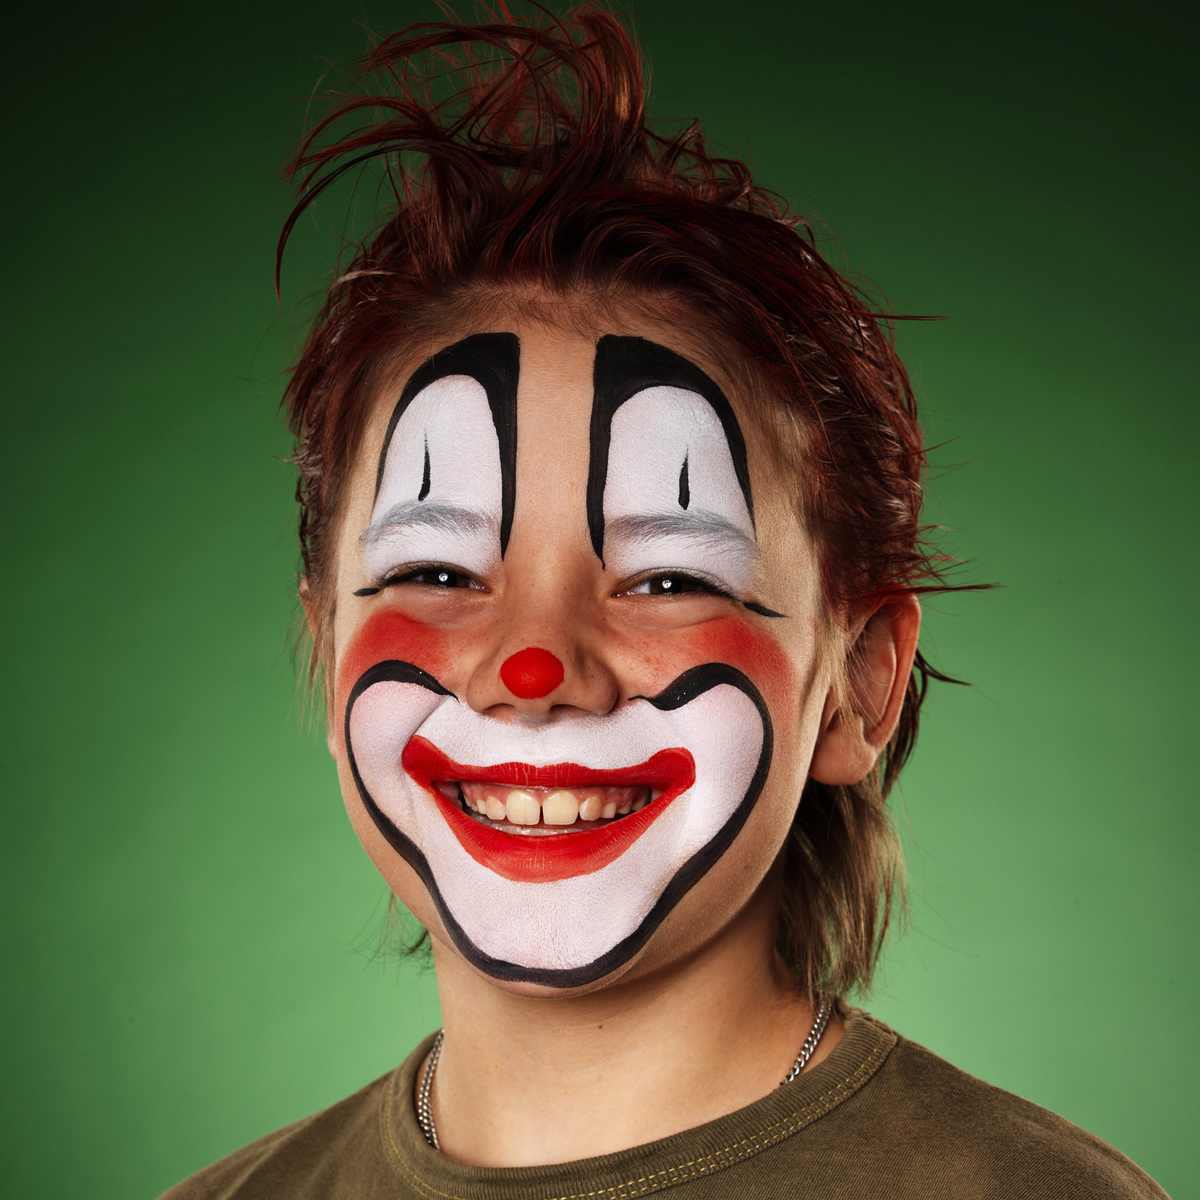 Silly clown face painting